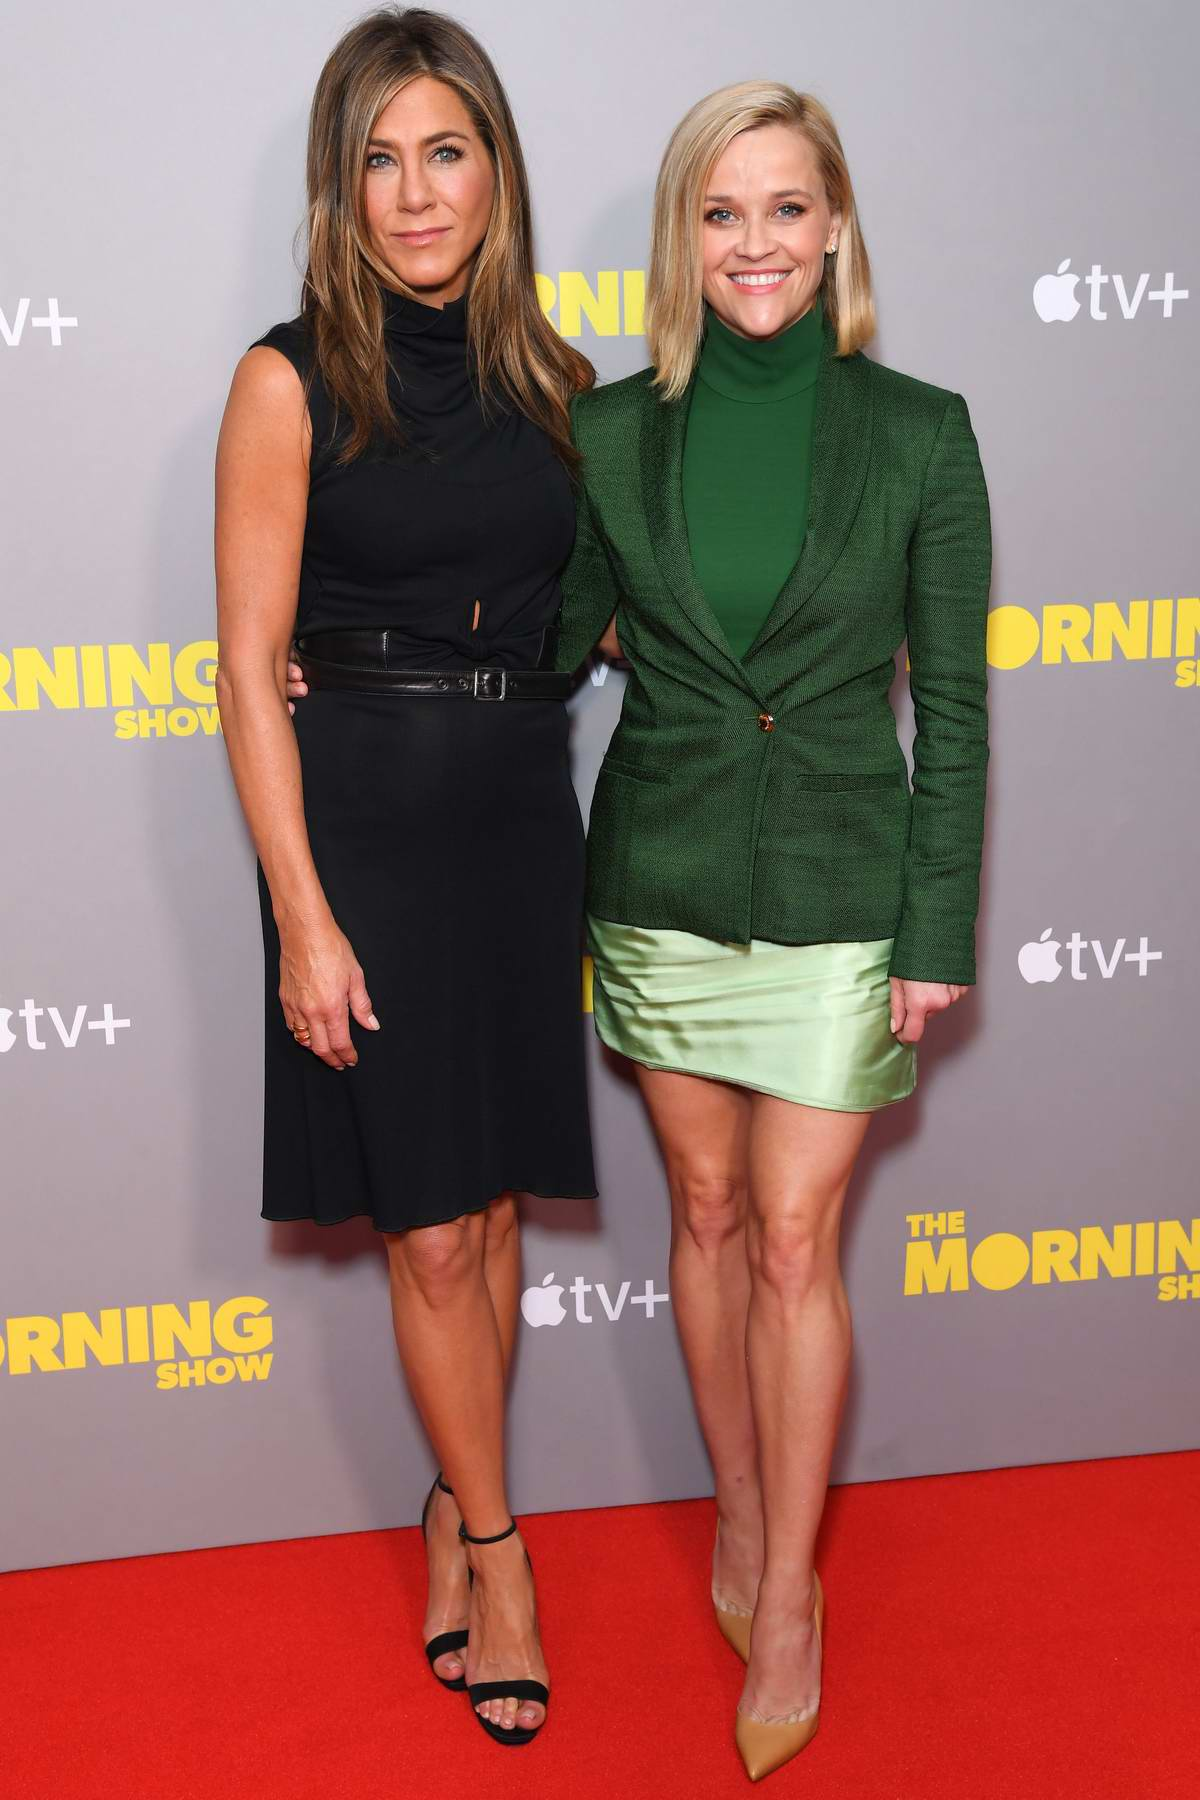 Reese Witherspoon and Jennifer Aniston attend a screening of Apple TV+'s 'The Morning Show' in London, UK